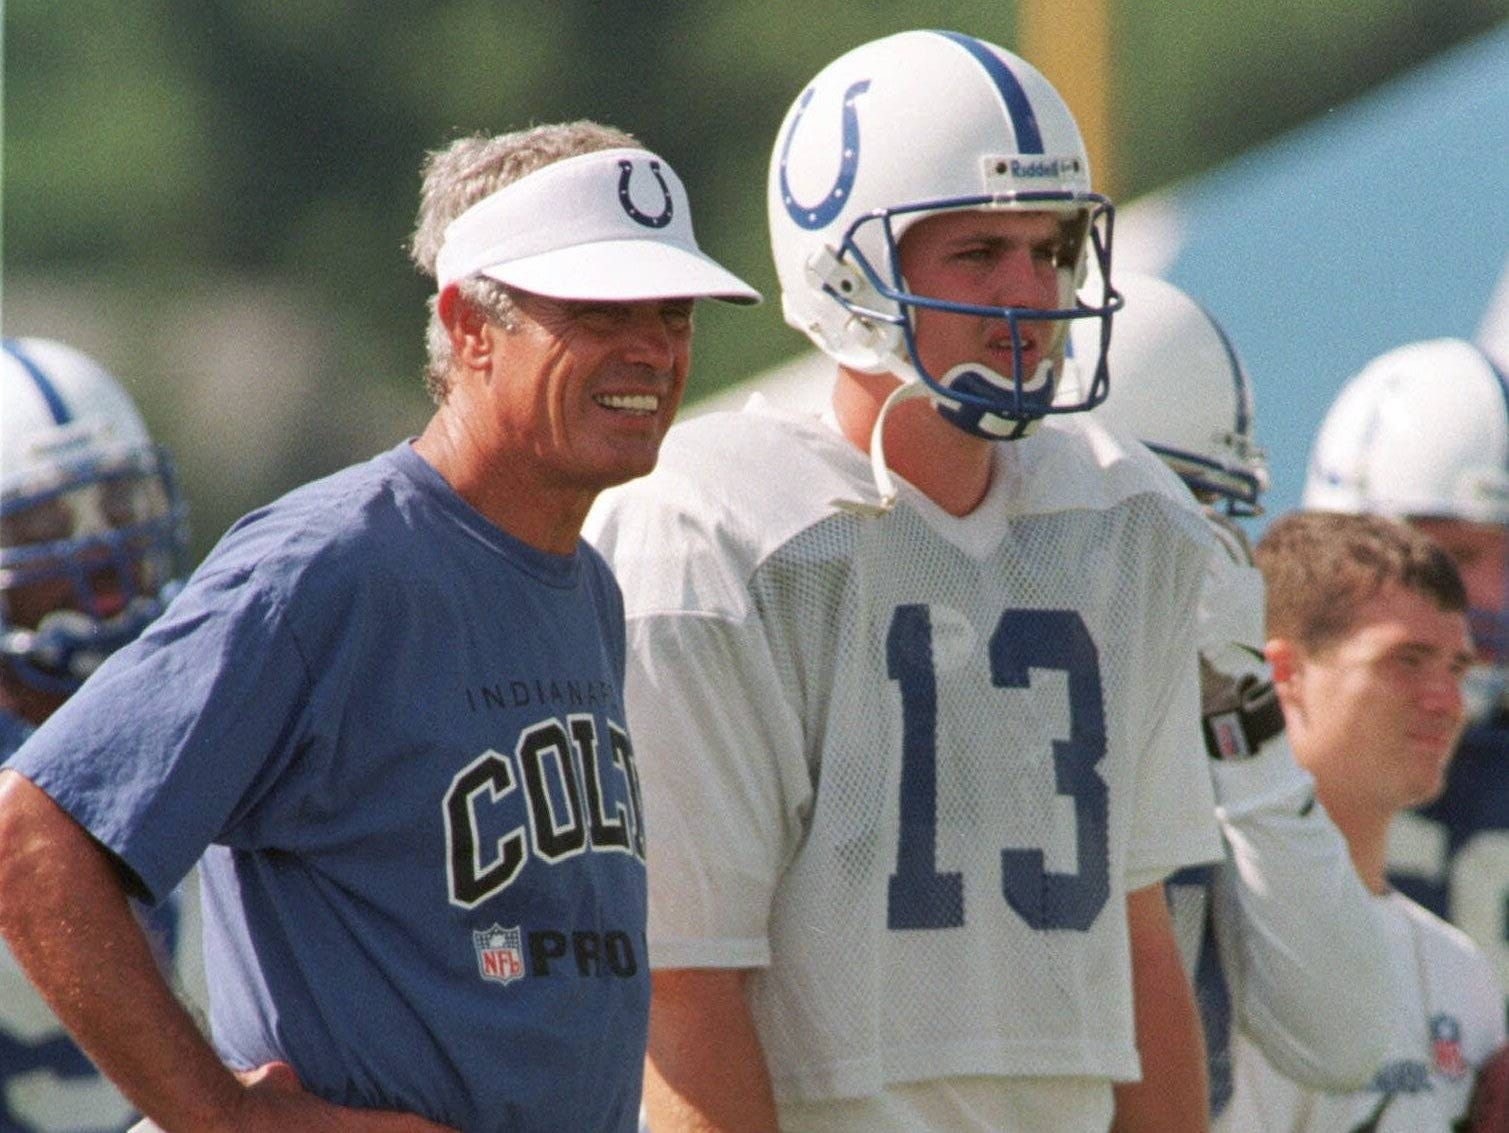 Indianapolis Colts' head coach Jim Mora, left, watches practice with quarterback Kelly Holcomb during the team first practice in training camp at Anderson University in Anderson, Ind., Friday,, July 24, 1998.  The Colts' first round pick, quarterback Peyton Manning, has yet to sign a contract with the team.